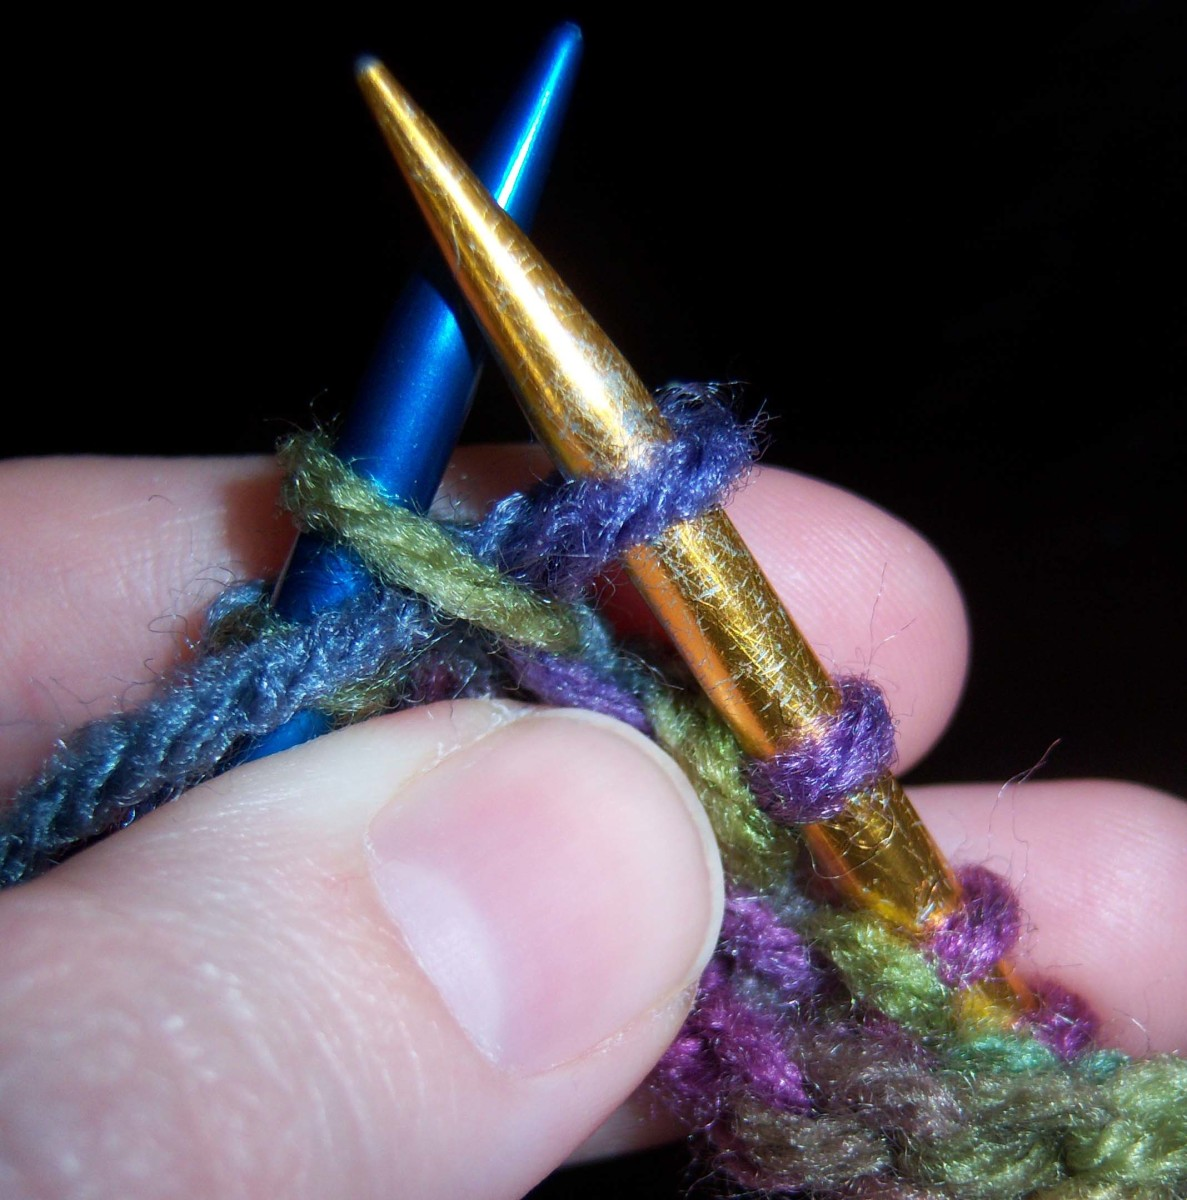 If you were going to only purl this stitch, you would let the green stitch slip from the blue needle.